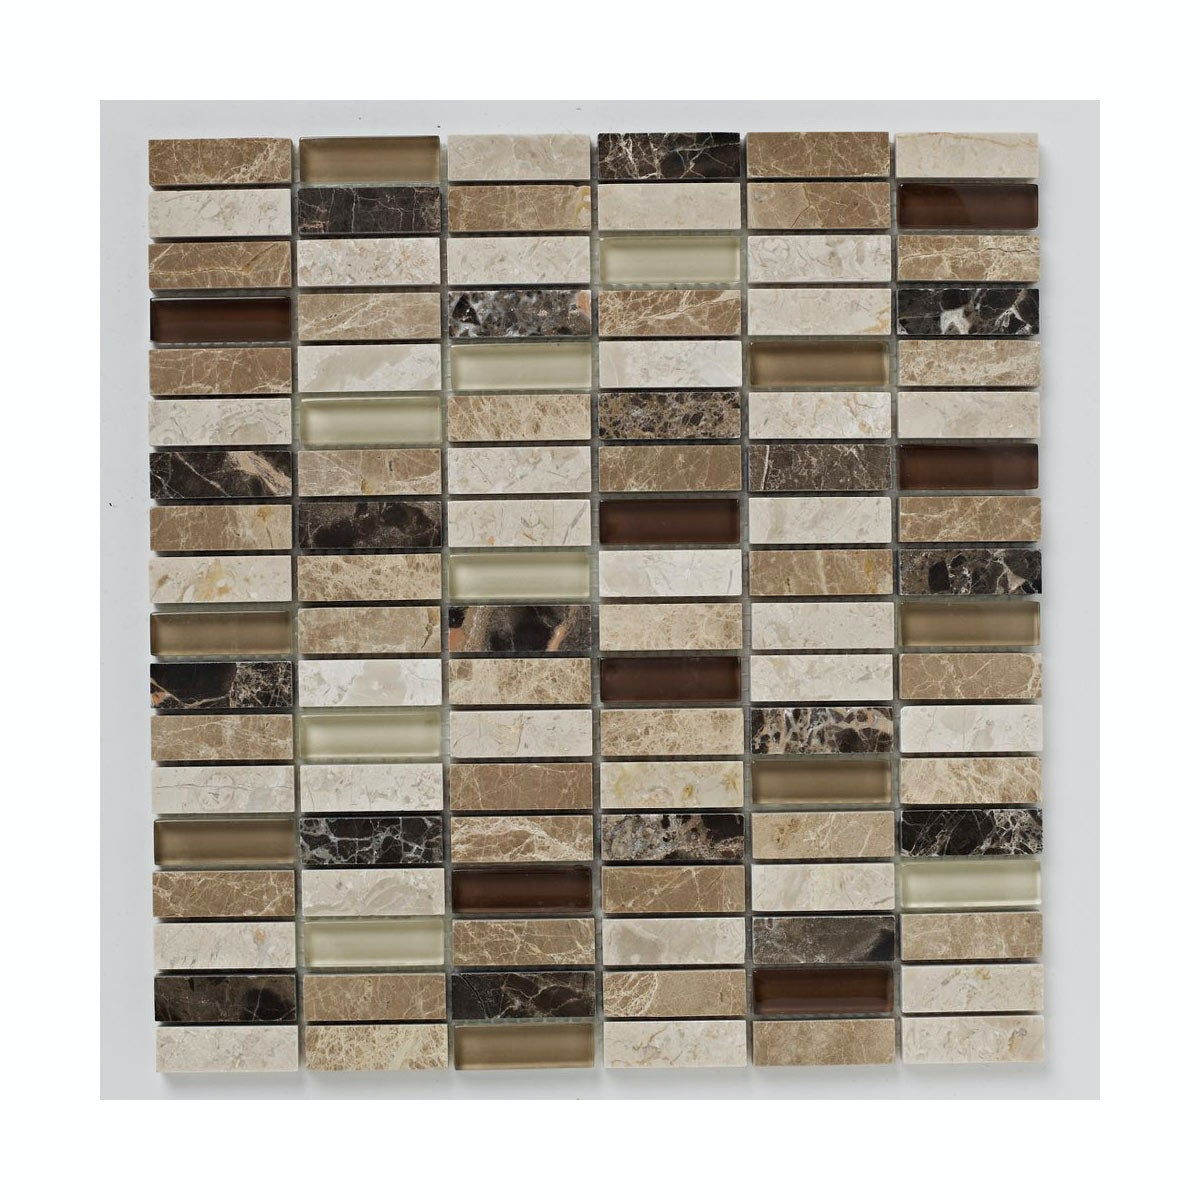 British Ceramic Tile Mosaic dapple beige matt tile 305mm x 305mm - 1 sheet